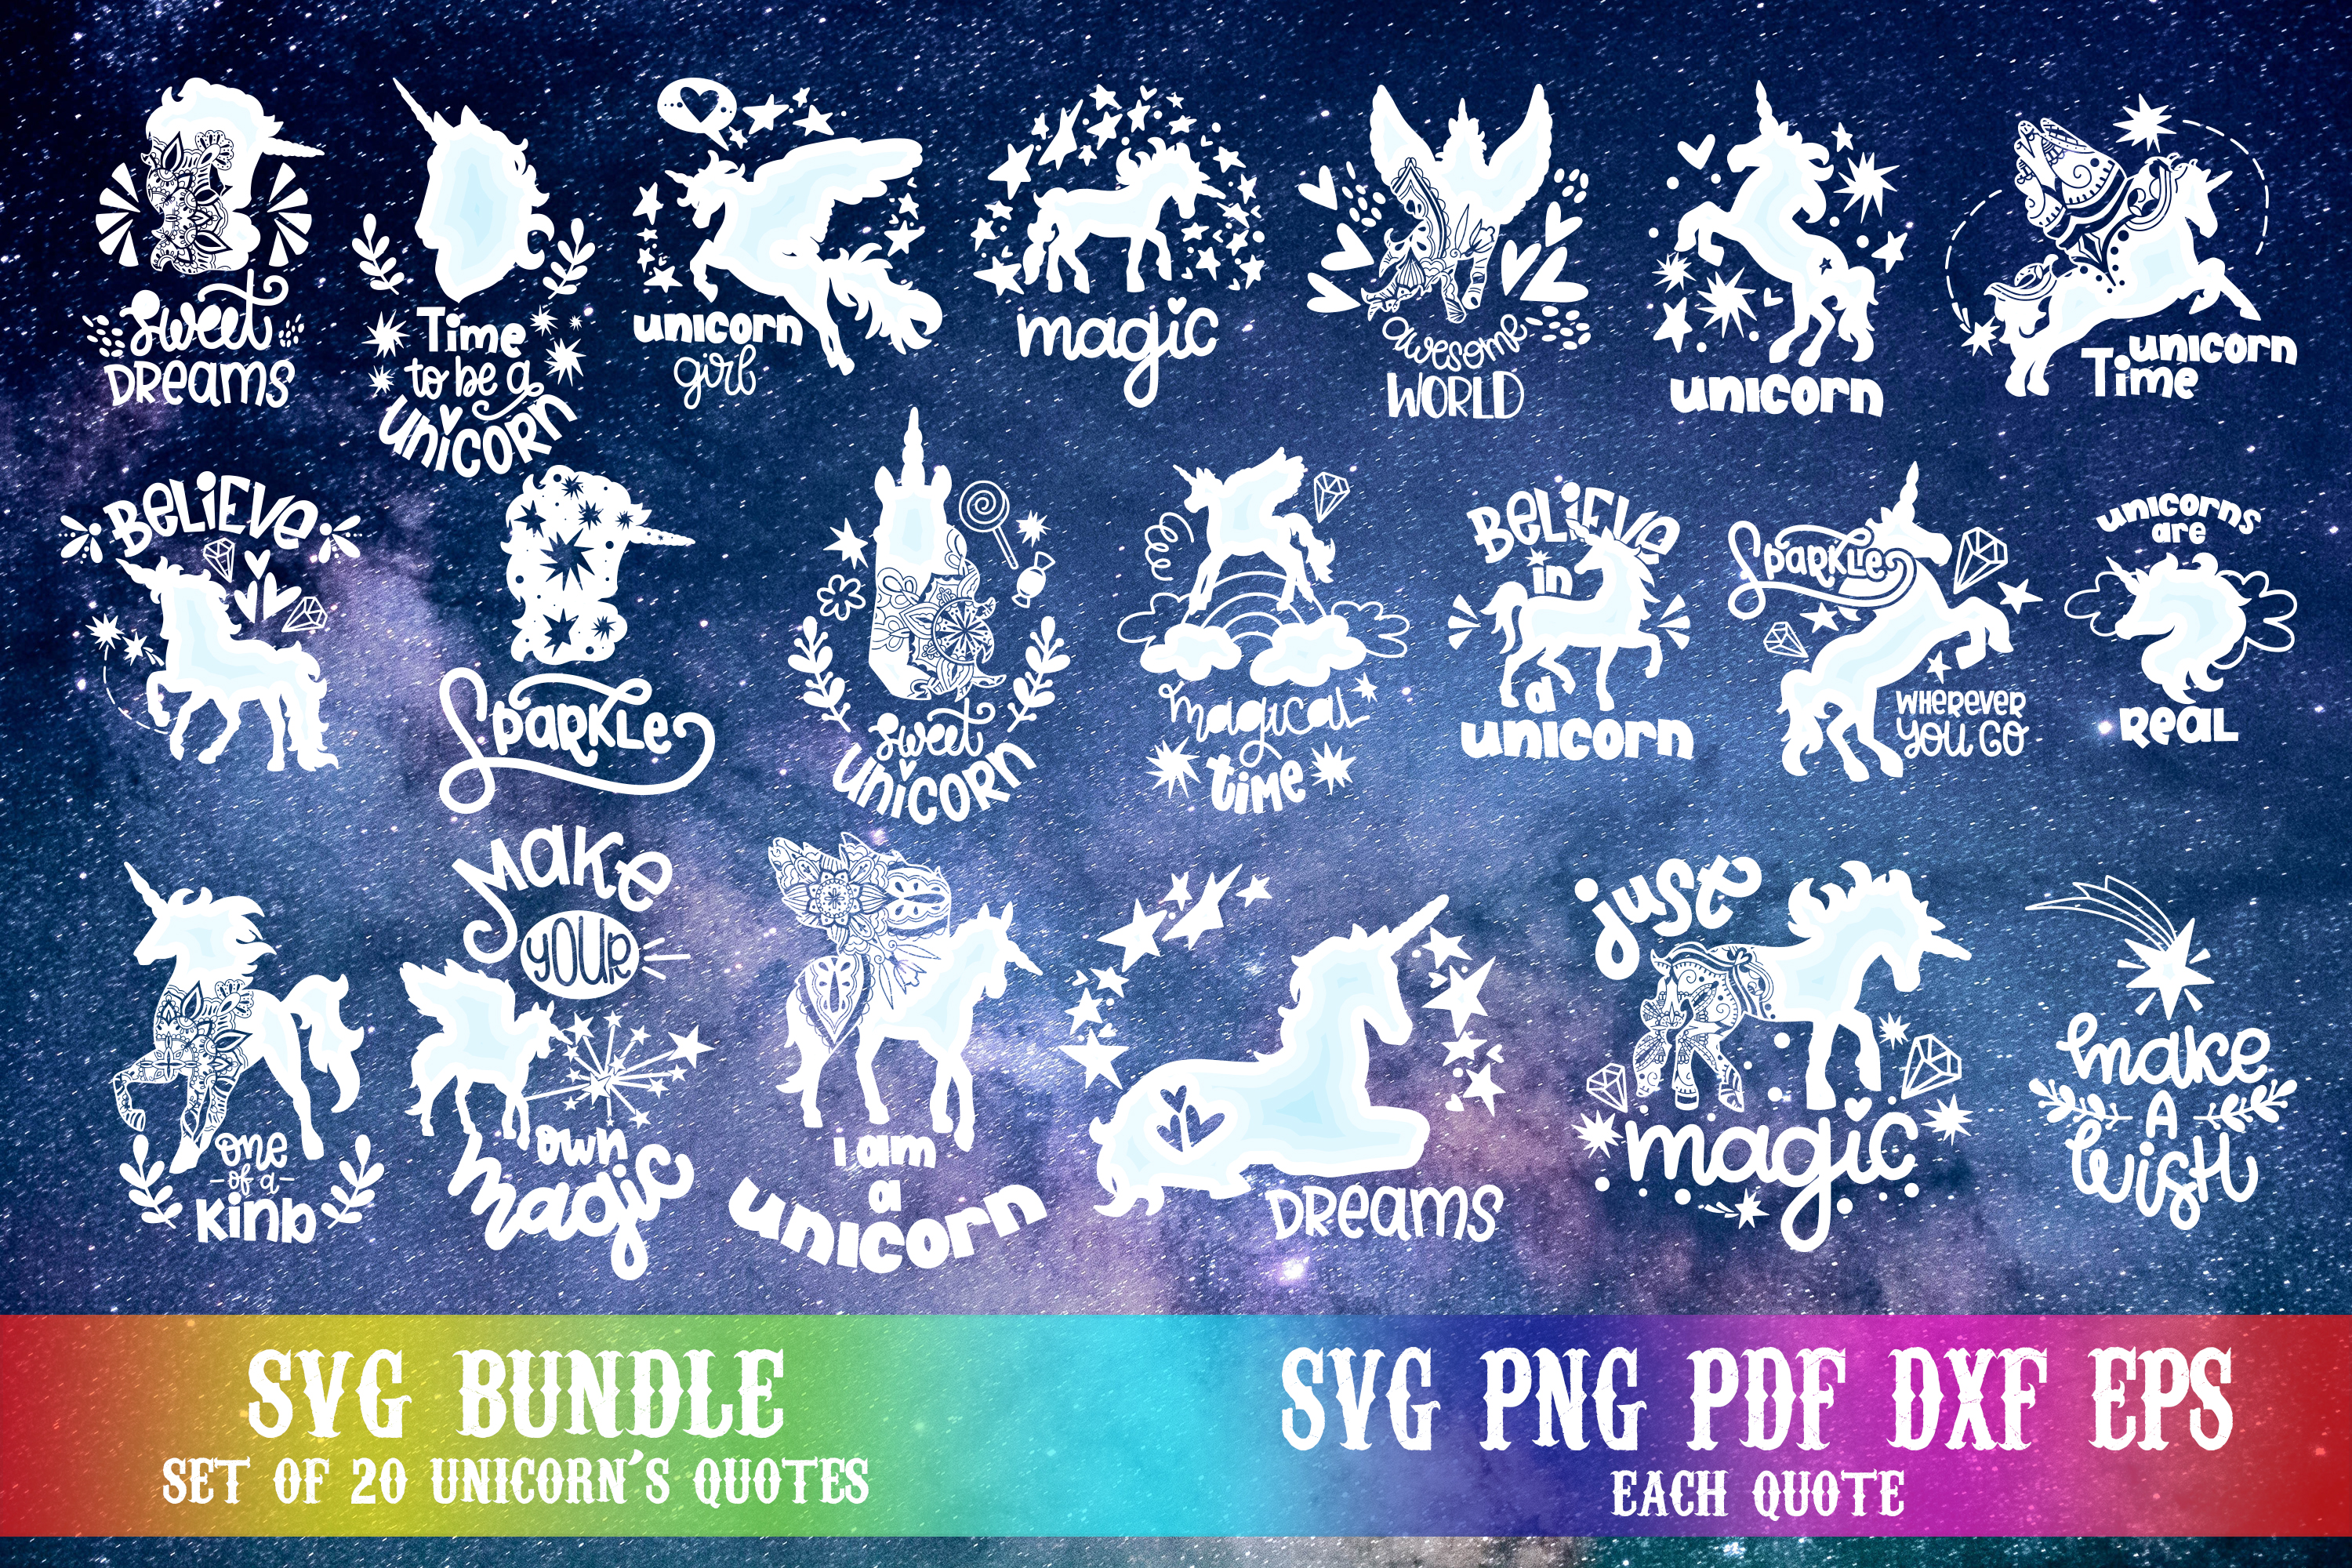 Download Free Unicorn Bundle Hand Lettered Quotes Graphic By Svg Story for Cricut Explore, Silhouette and other cutting machines.